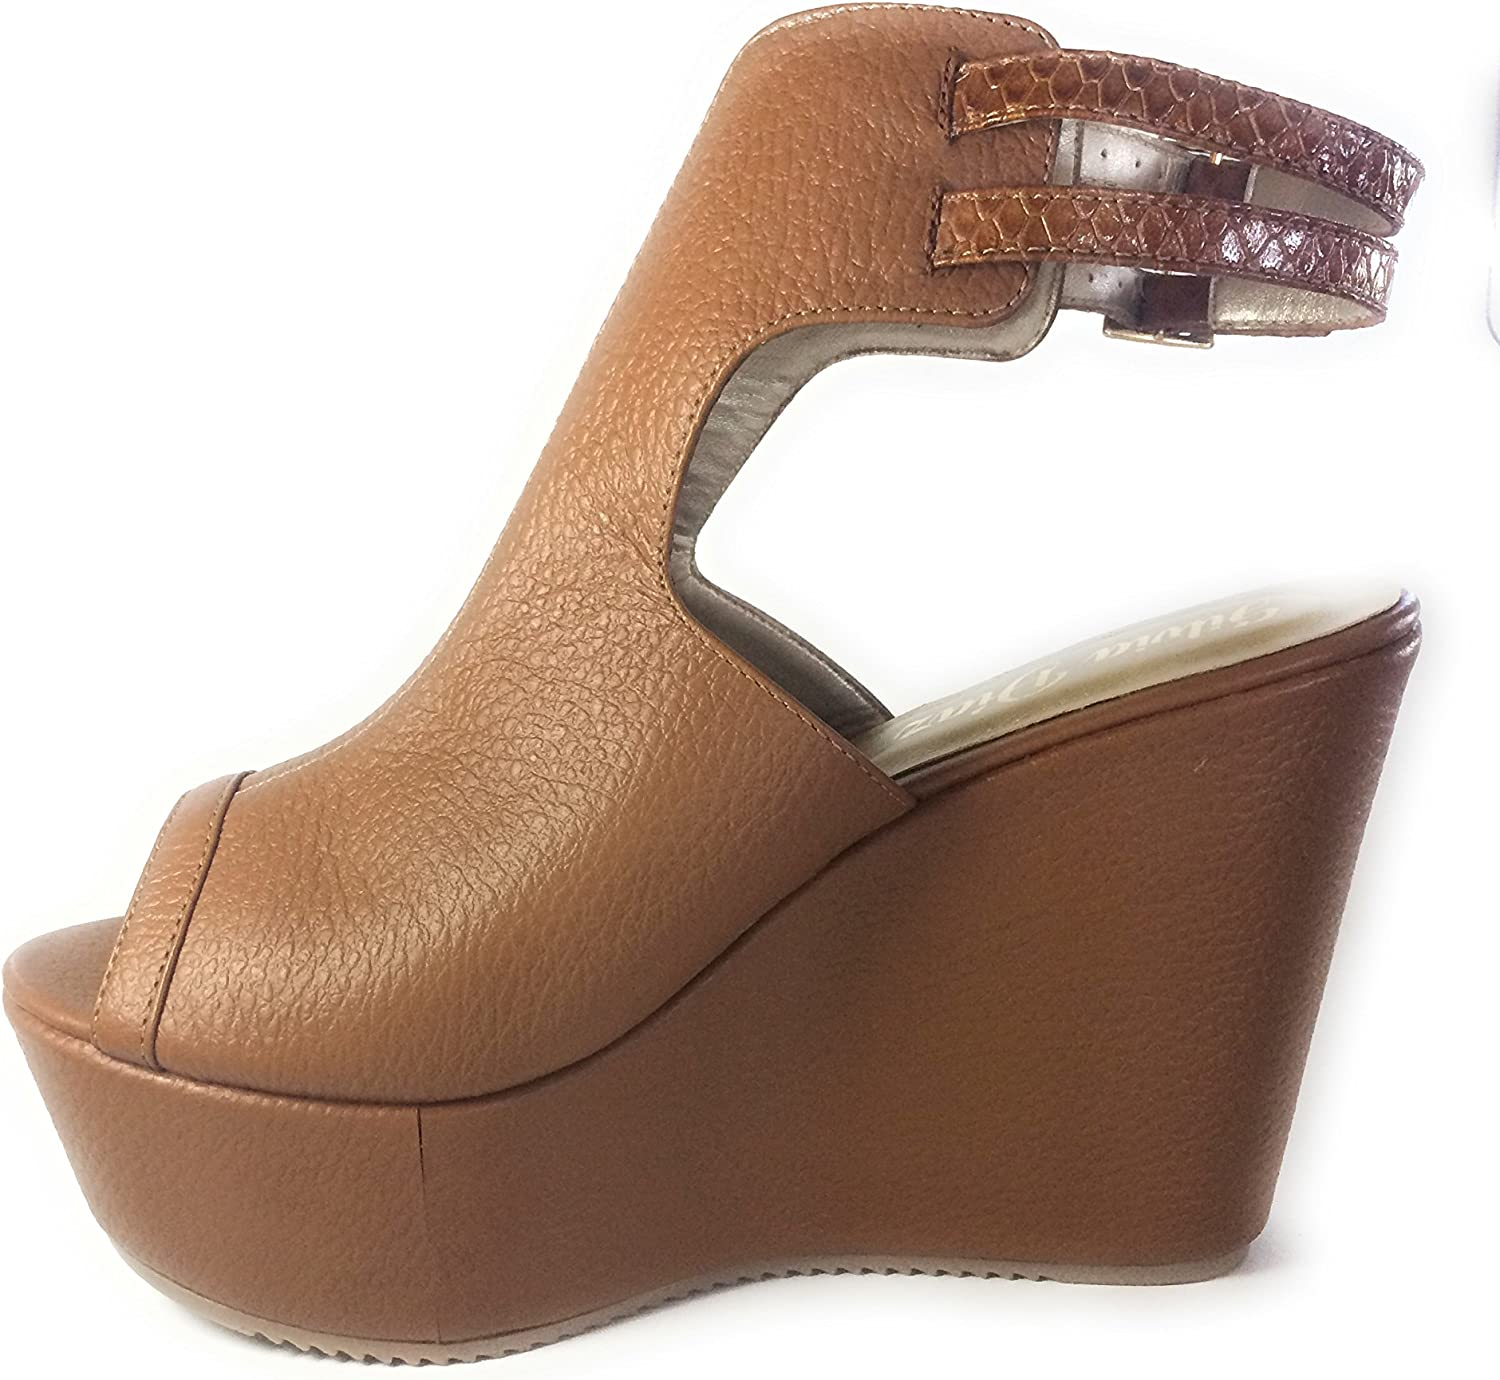 Silvia Diaz Fashion shoes Ankle T-Strap Wedges Honey